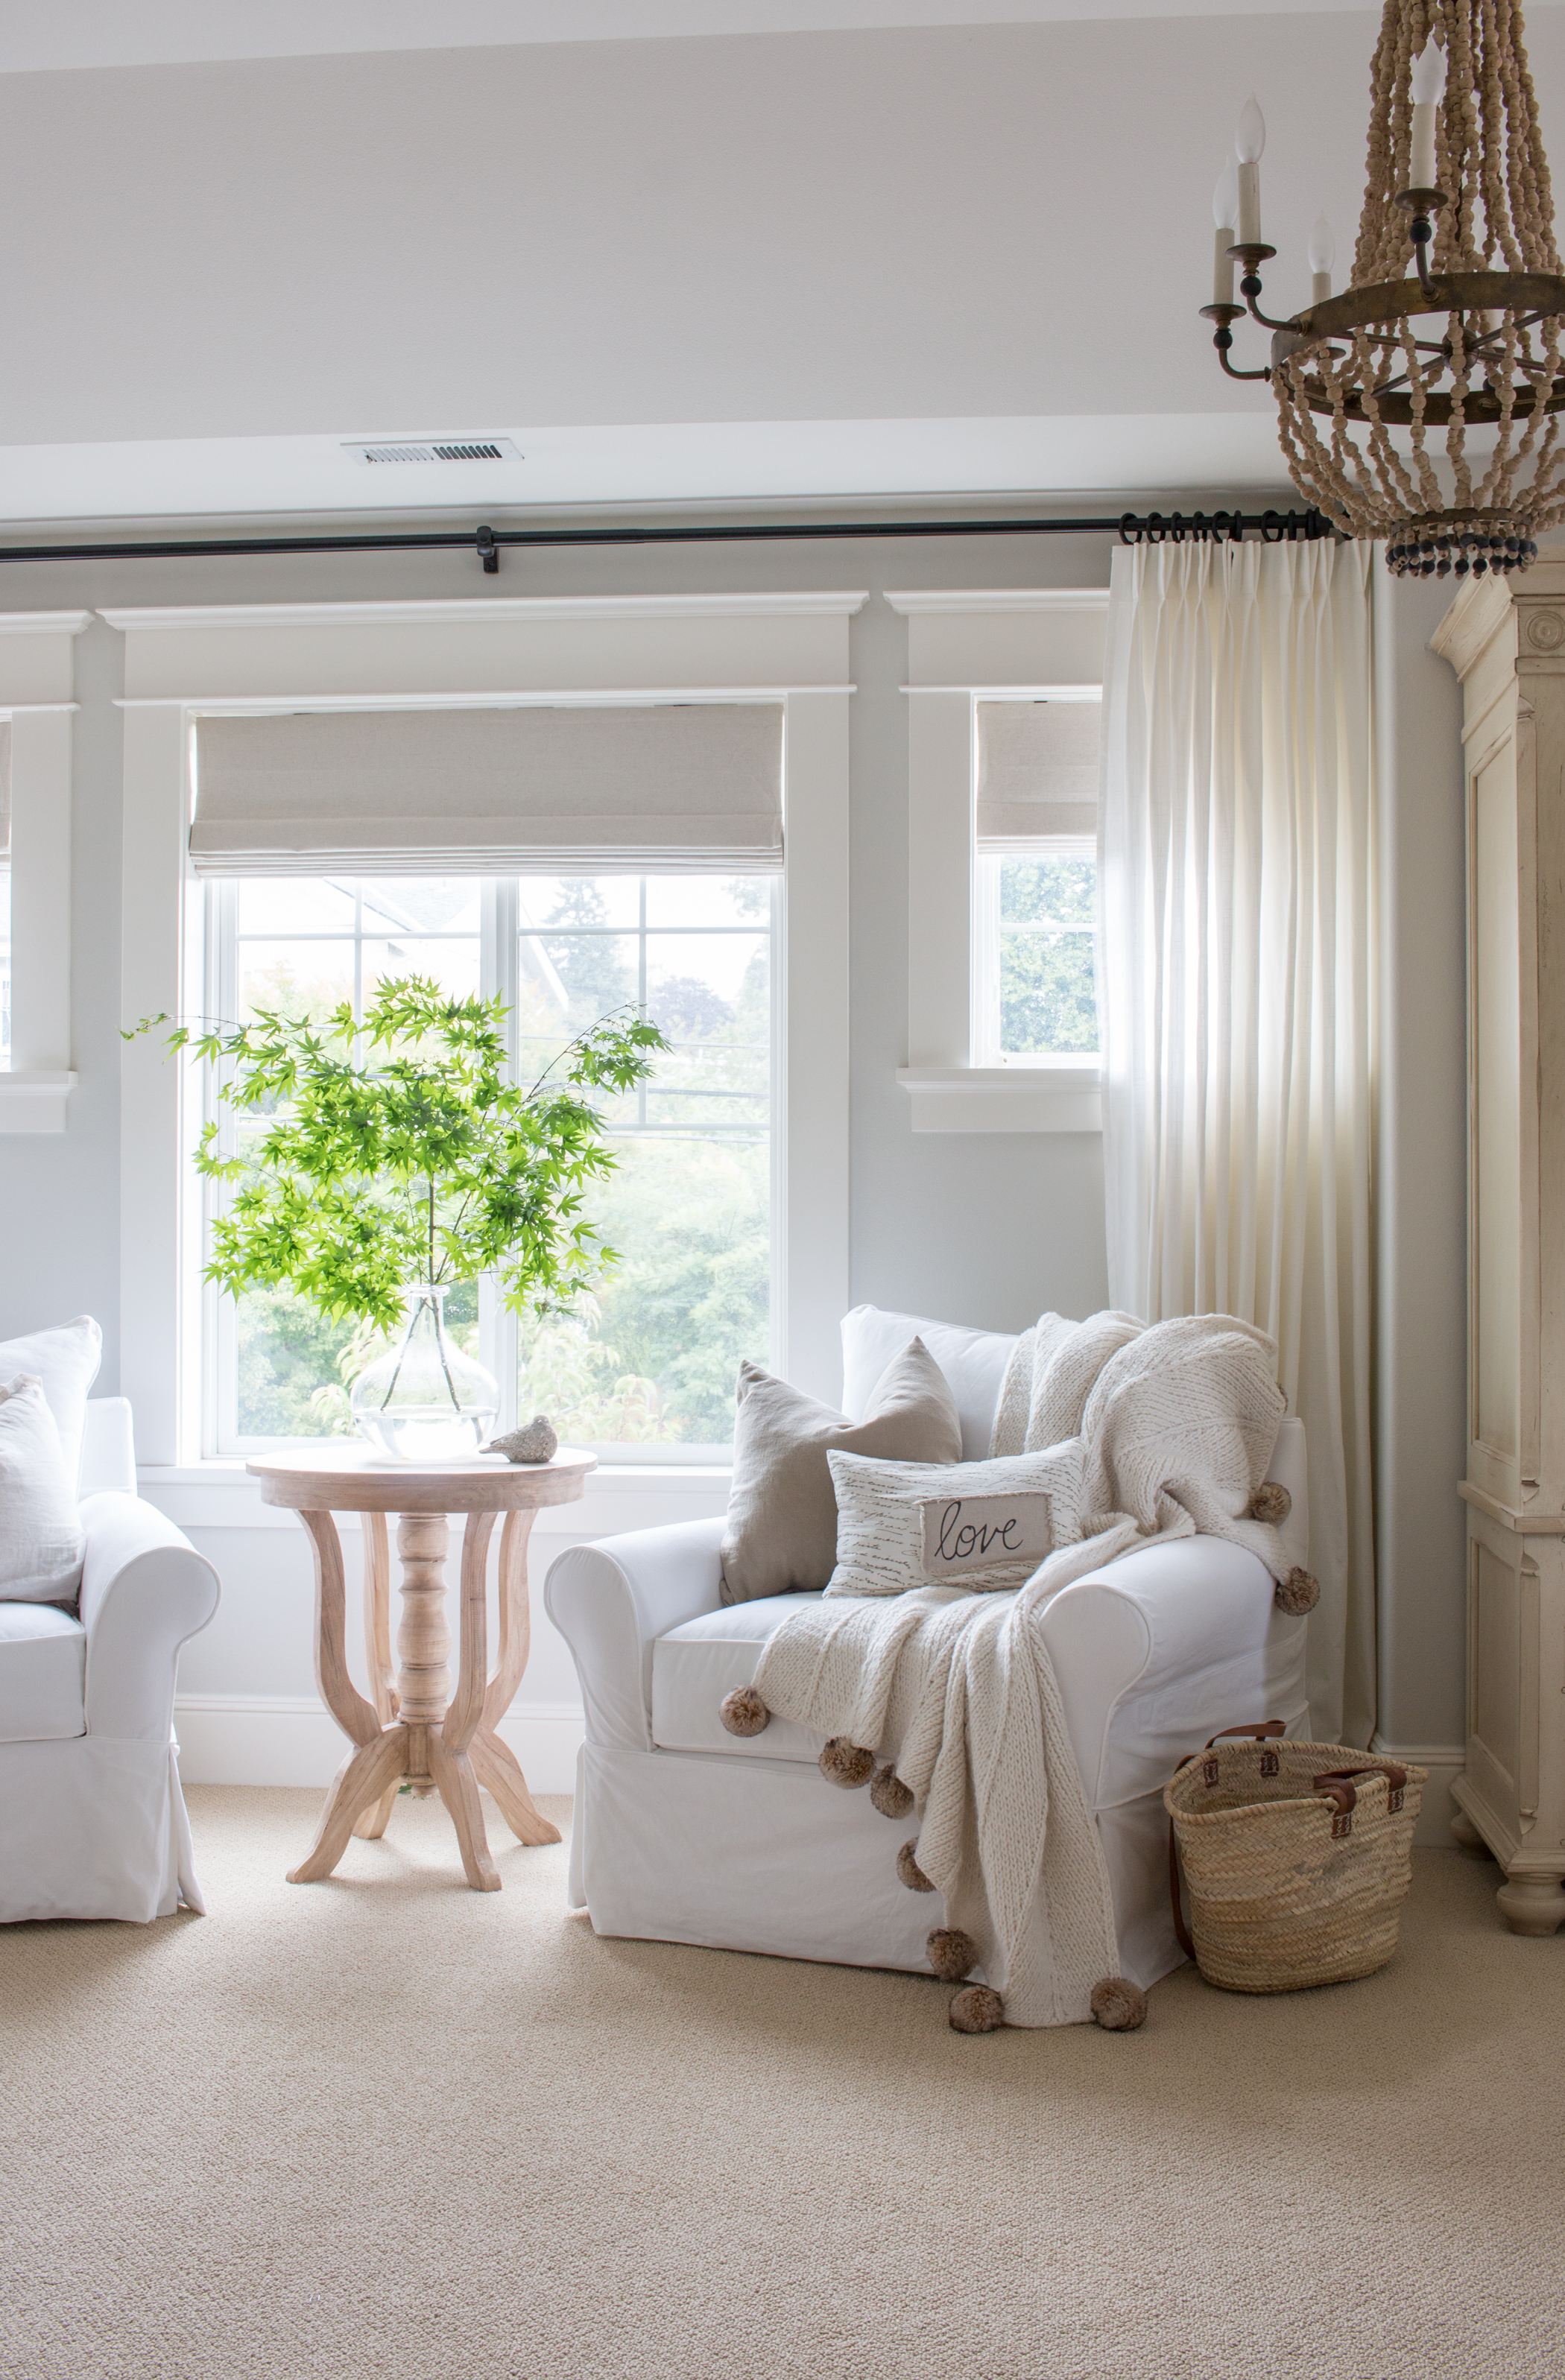 Bedroom Sitting Area With White Chairs